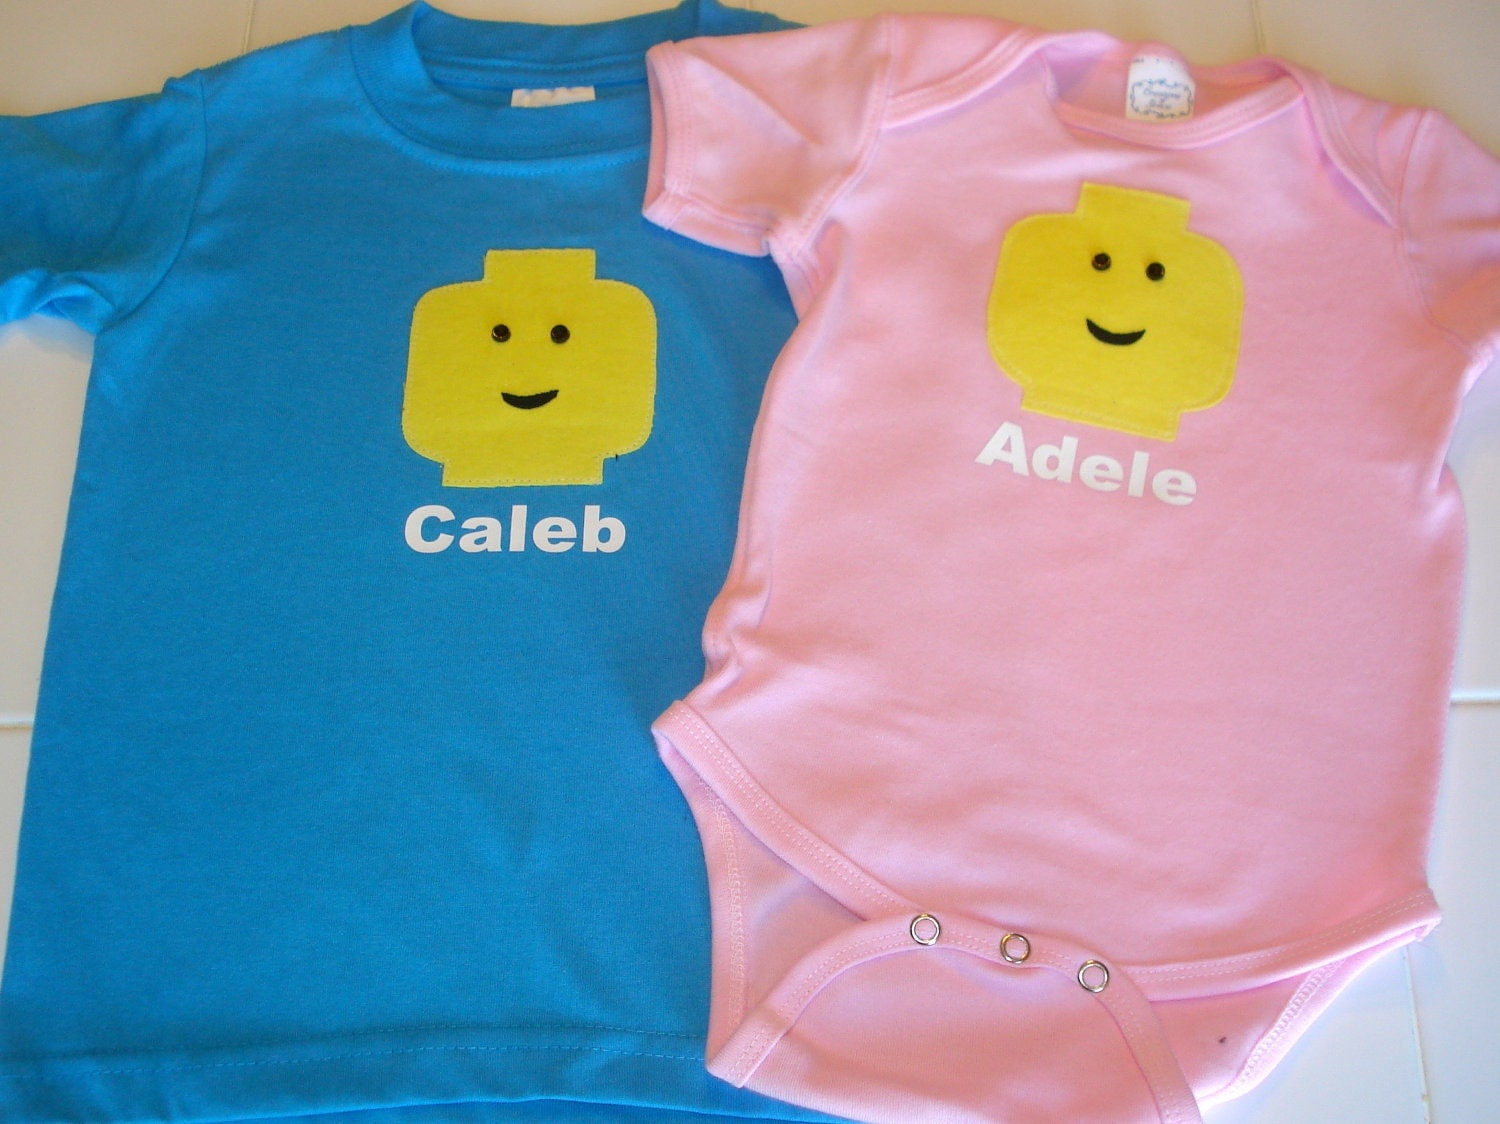 2 Lego Onesies for Siblings or Twins - torilynn817